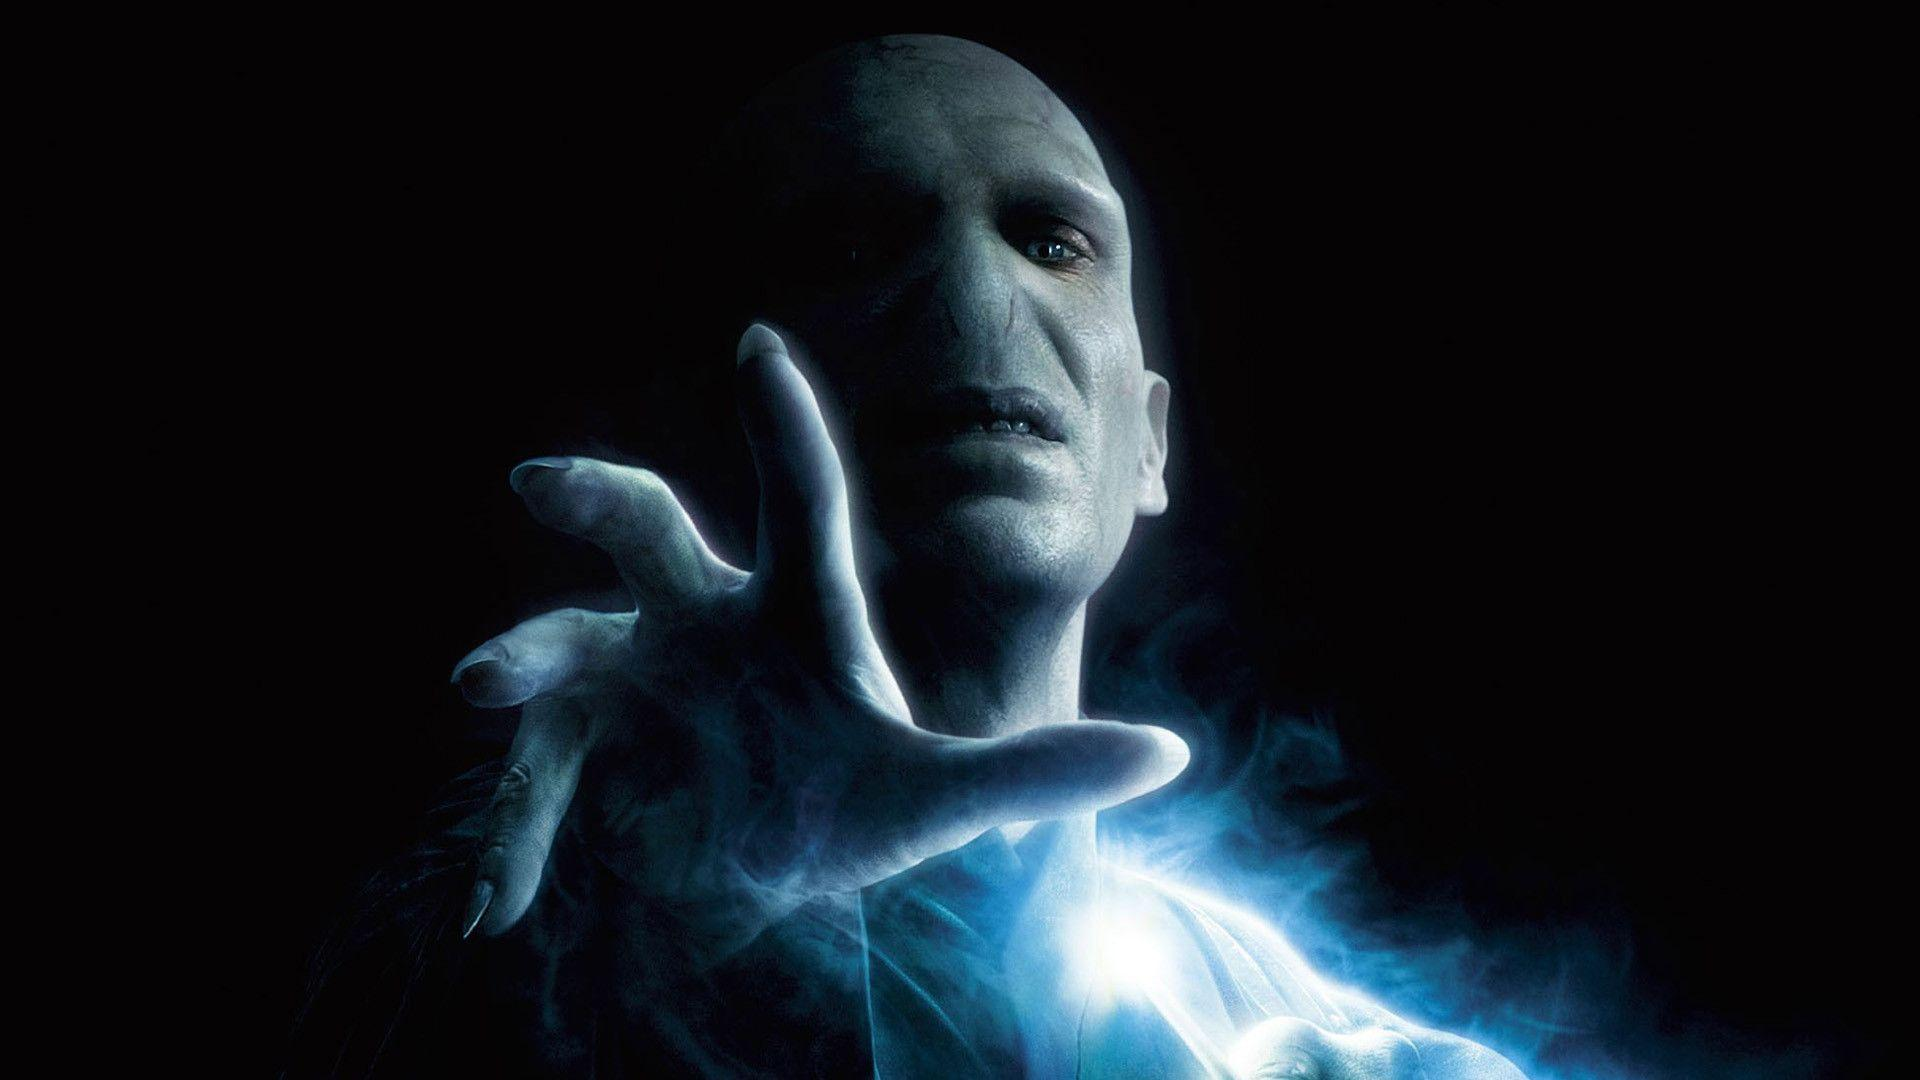 voldemort wallpapers - wallpaper cave